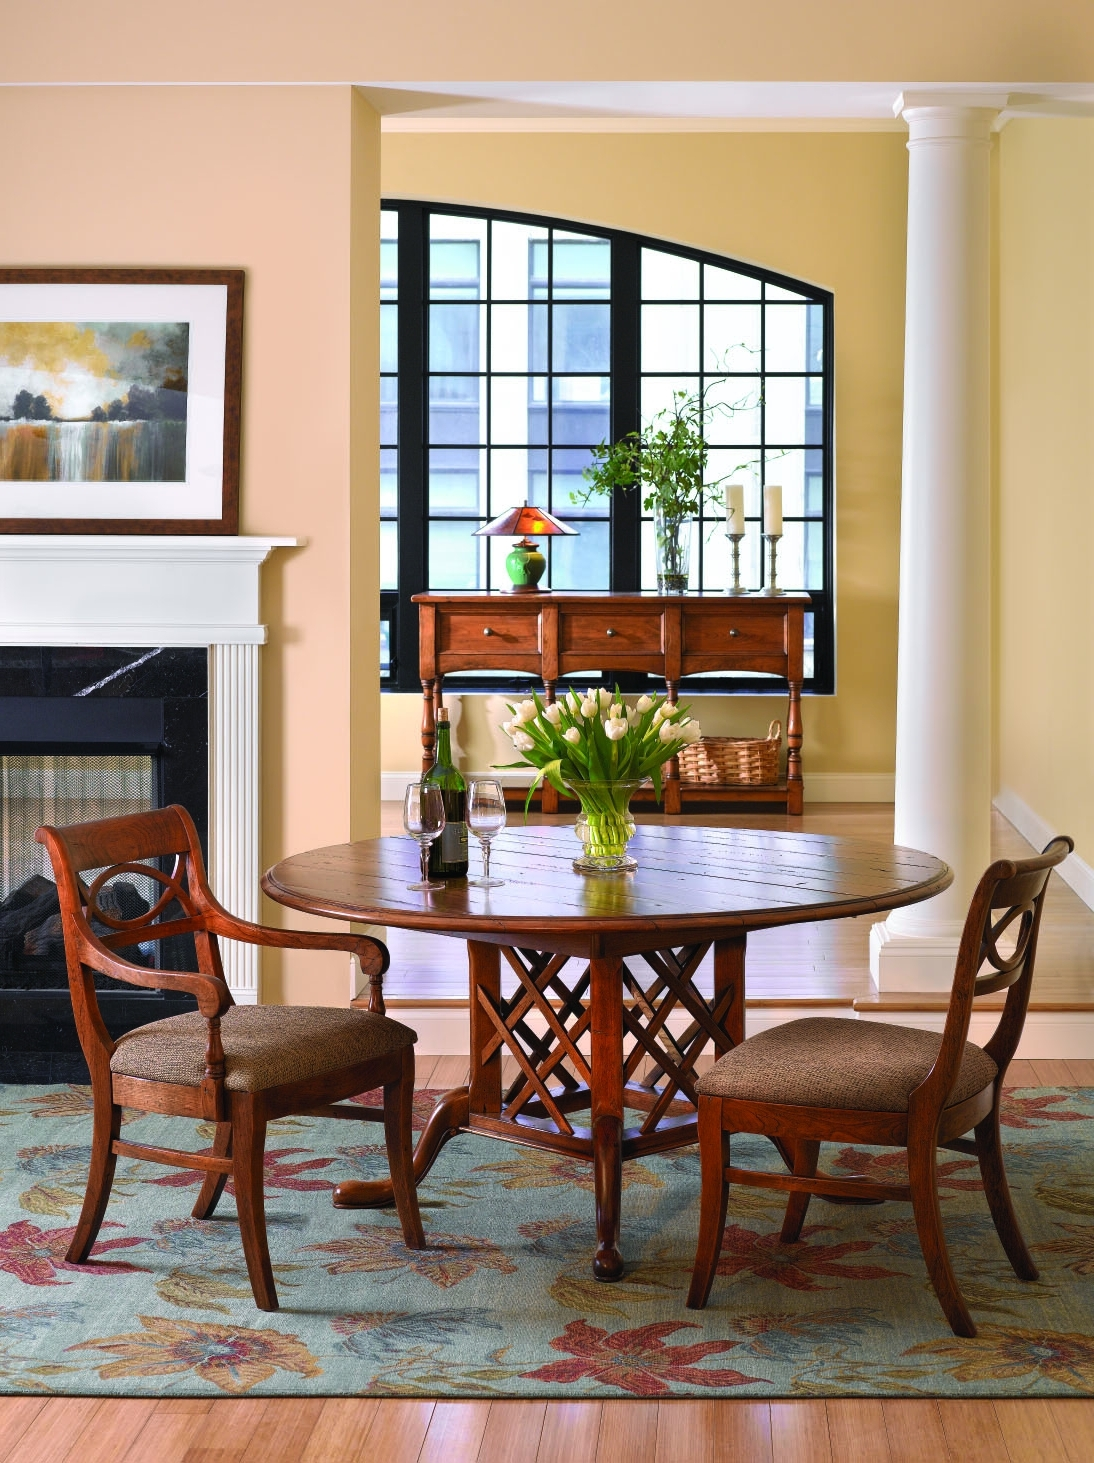 Patterson 6 Piece Dining Sets Intended For Current Patterson Furniture Company – Quality American Made Furniture For (Gallery 20 of 25)